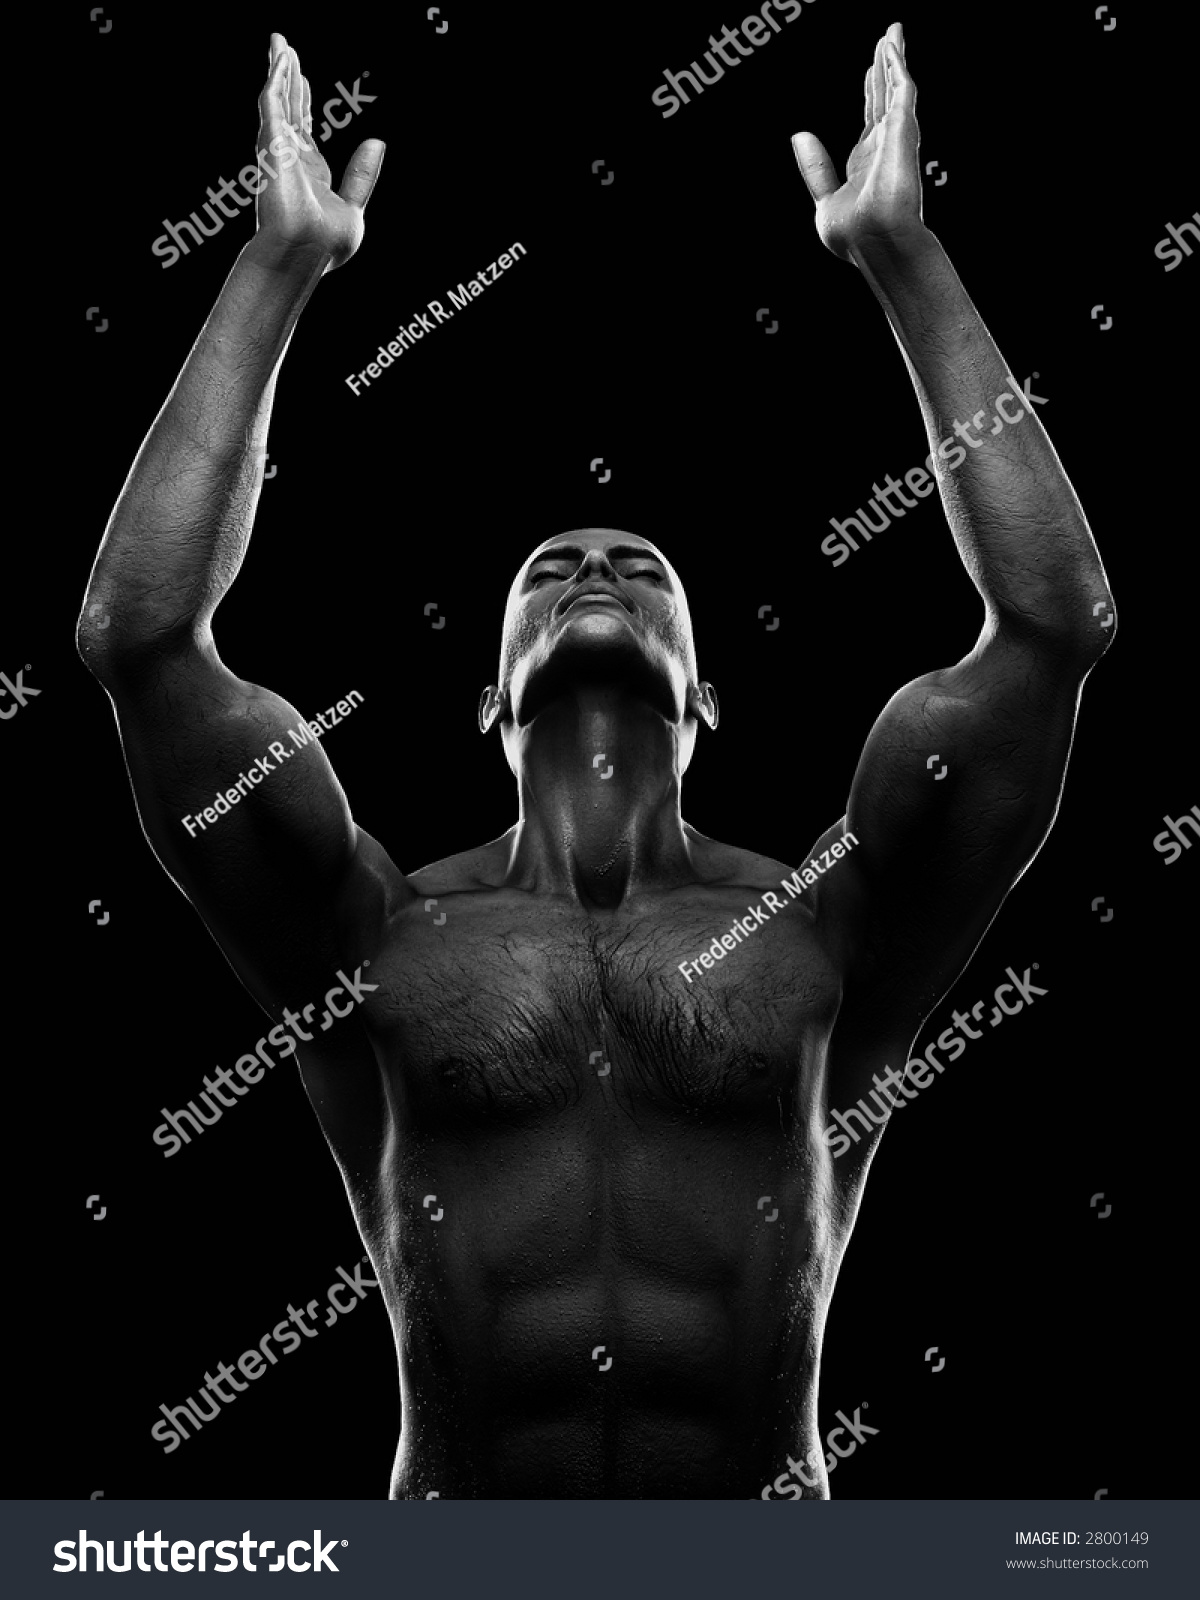 male figure arms raised teh skyのイラスト素材 2800149 shutterstock